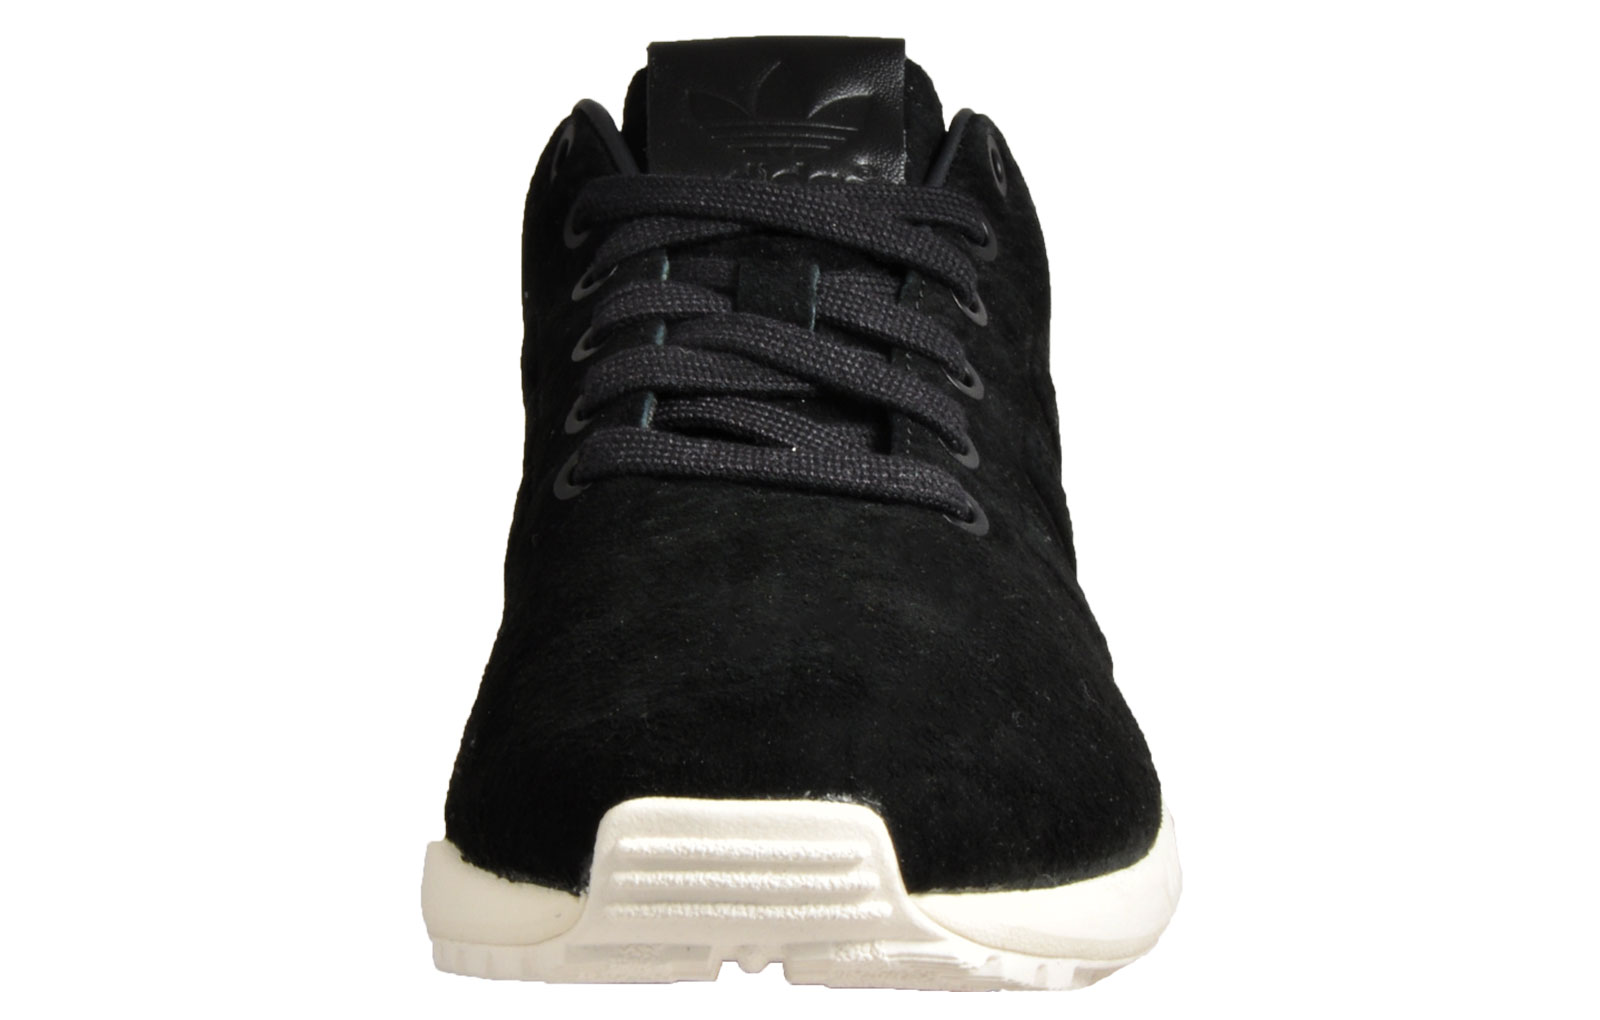 a247c607d202a Adidas Originals ZX Flux Jewel Women s Classic Casual Leather Retro Gym  Trainers